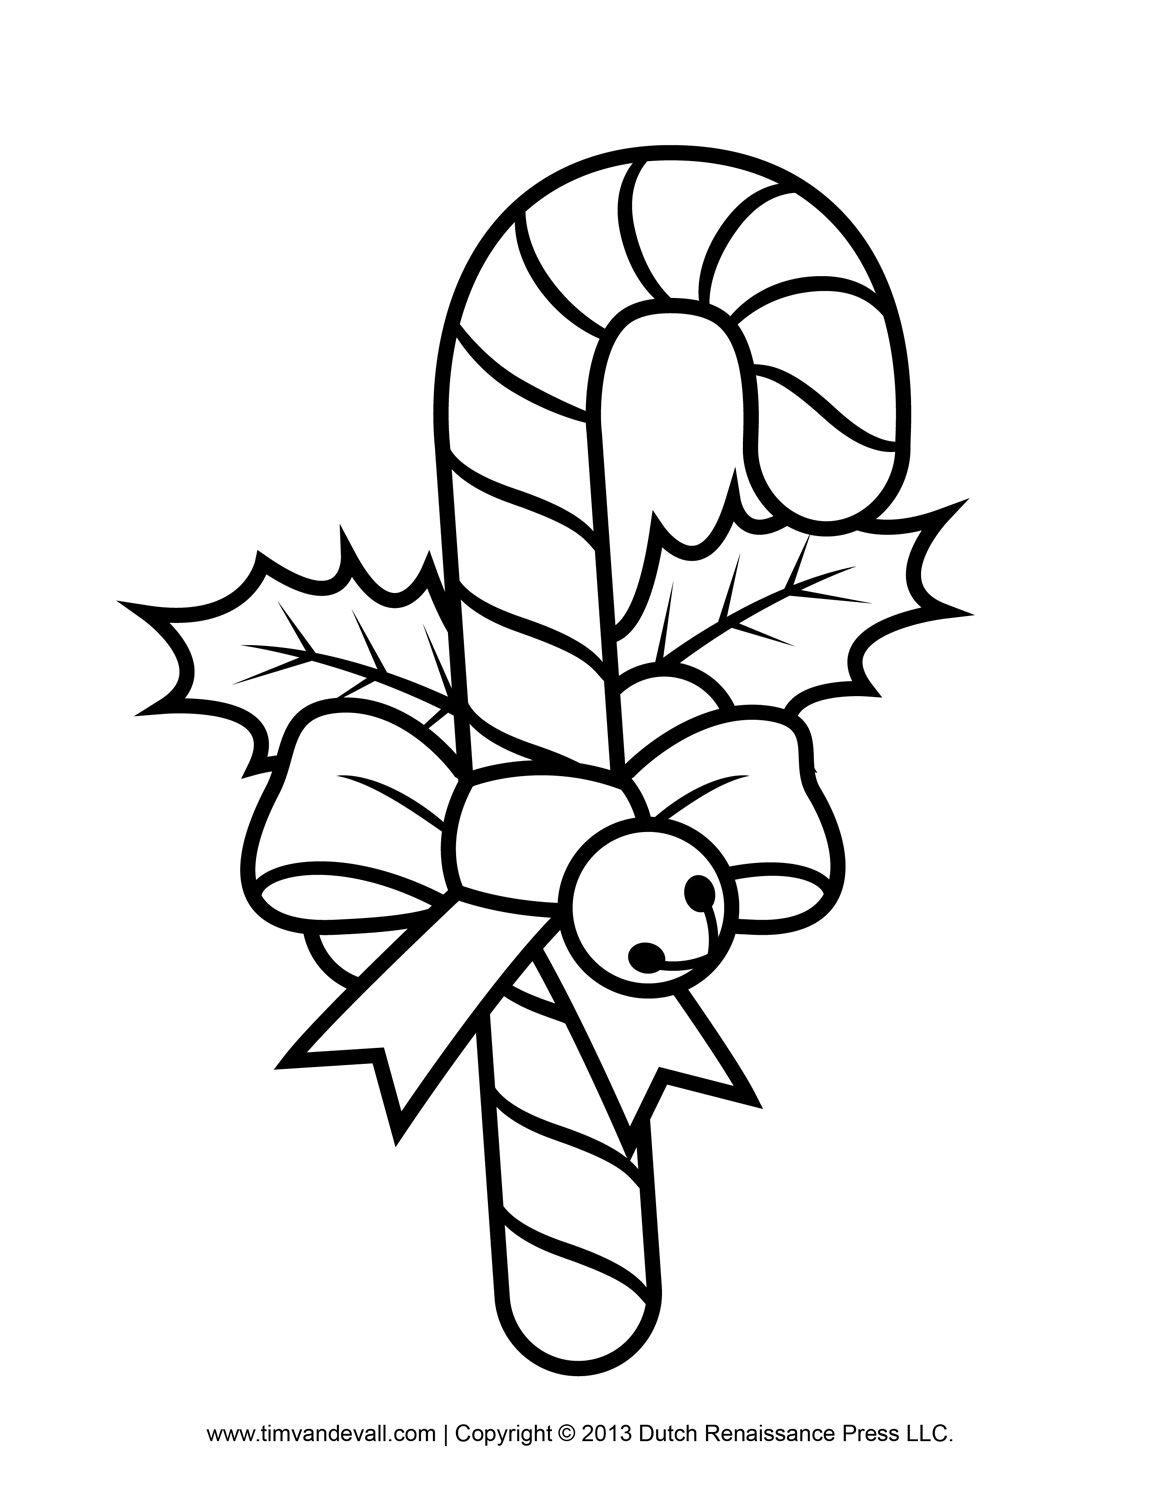 Free Candy Cane Template Printables, Crafts, Clipart & Decorations - Free Candy Cane Template Printable